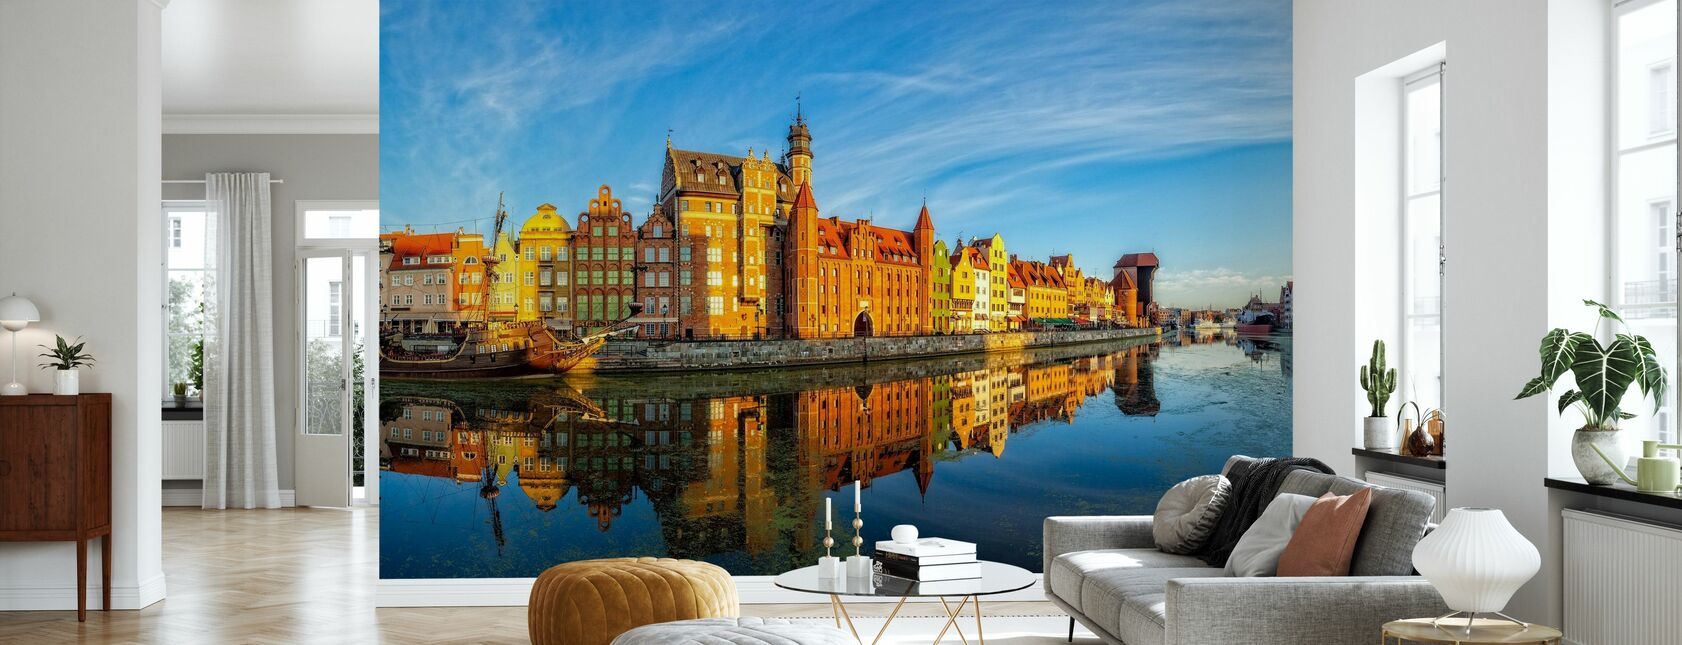 Riverside of Gdansk - Wallpaper - Living Room